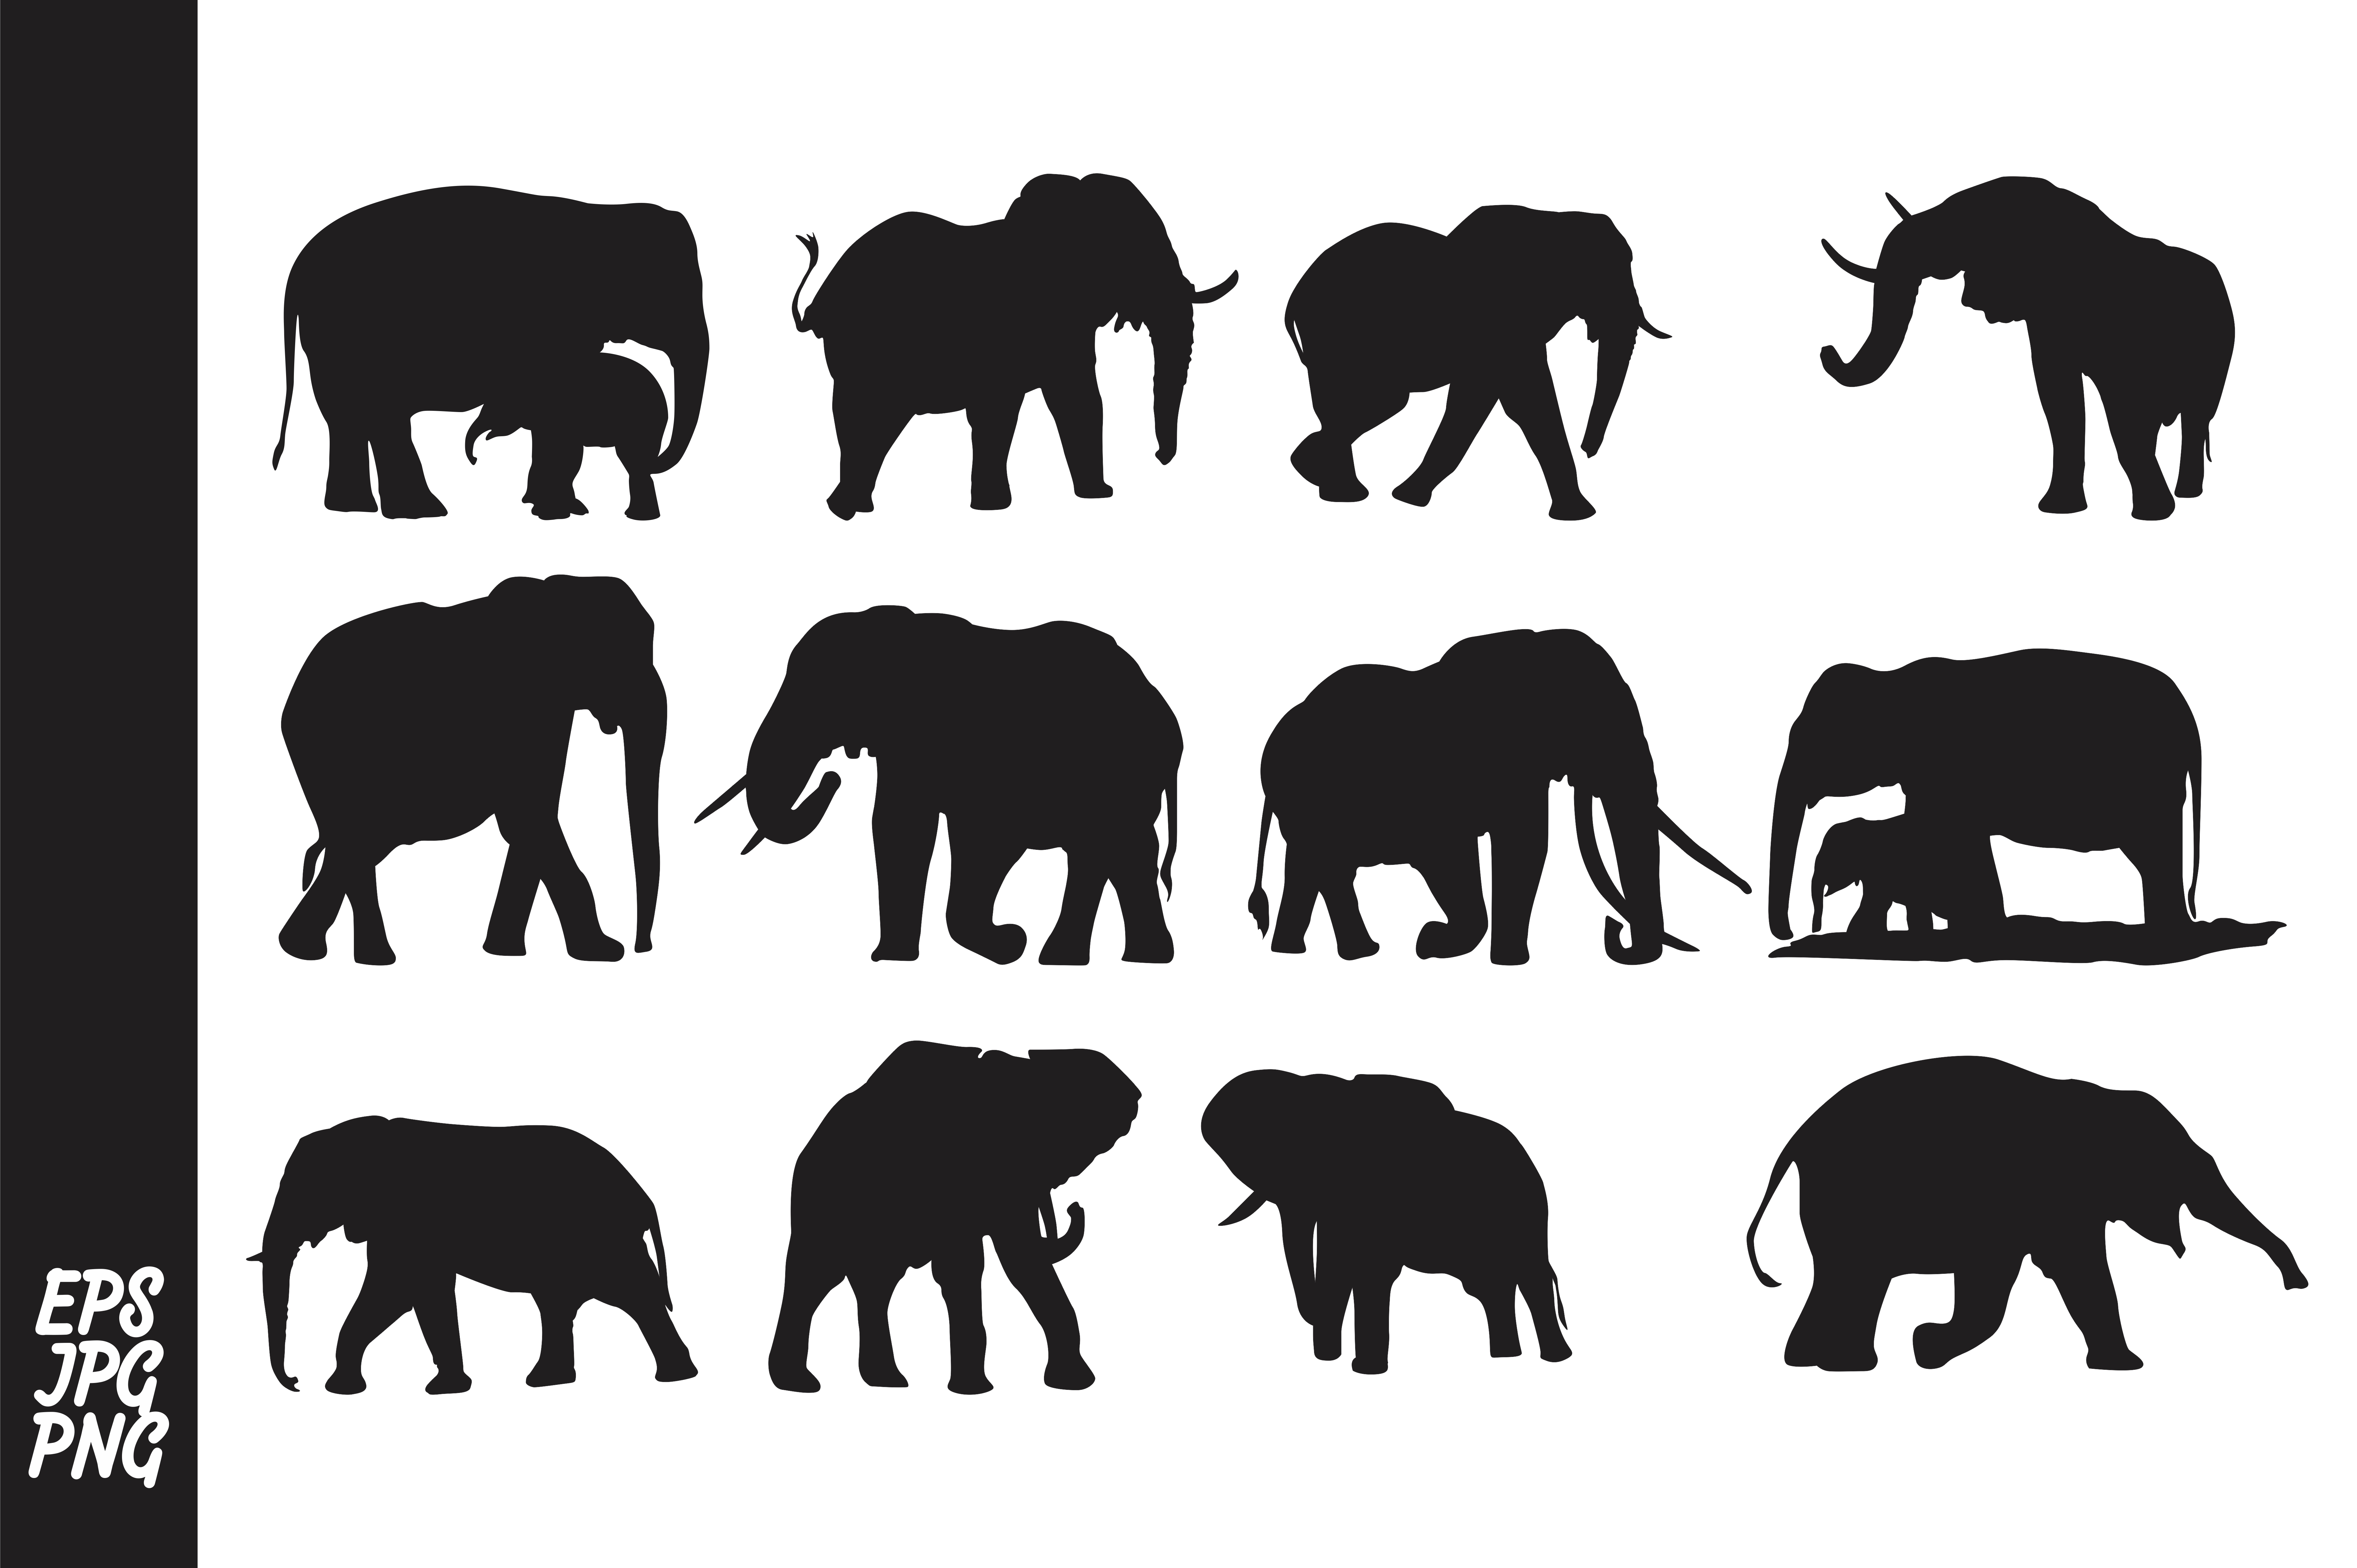 Download Free 12 Elephant Silhouette Bundle Graphic By Arief Sapta Adjie for Cricut Explore, Silhouette and other cutting machines.